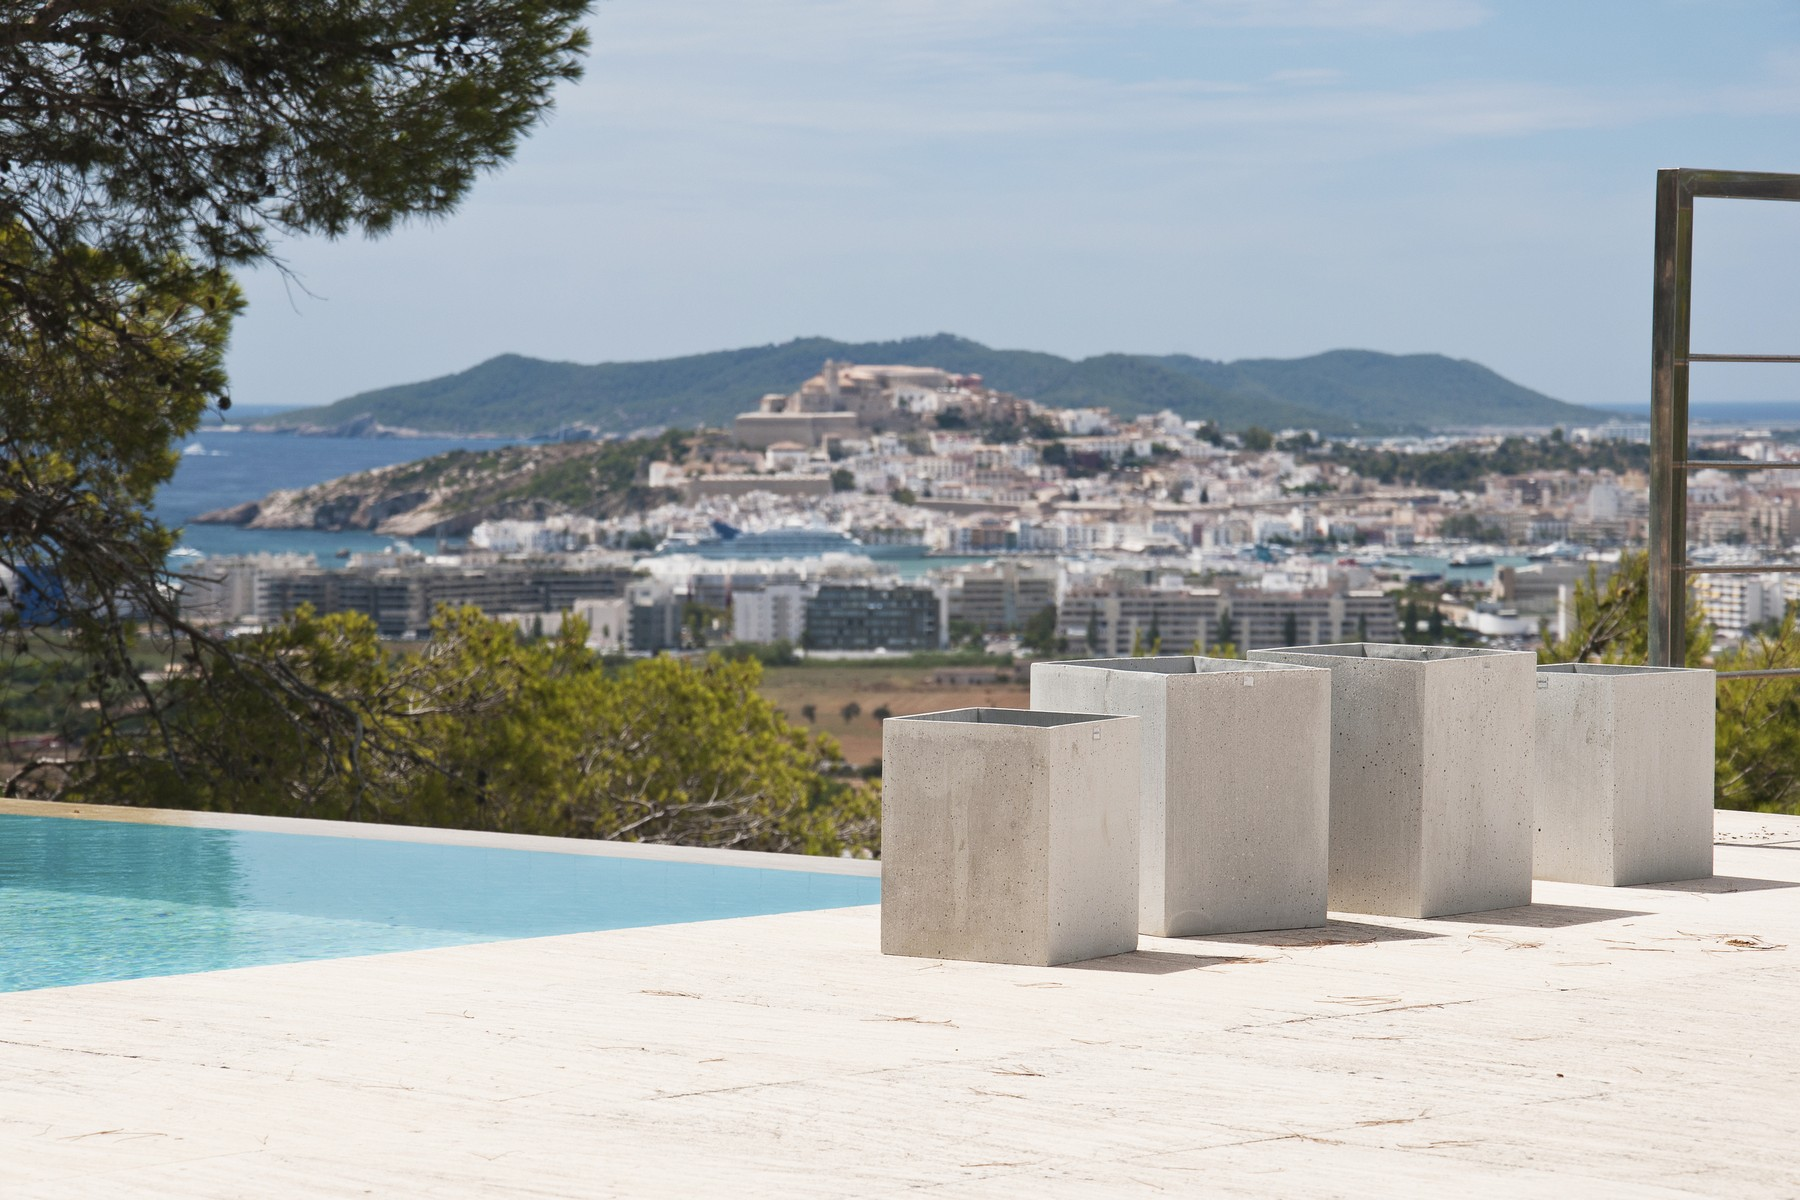 Single Family Home for Sale at Designer Villa In Top Location Ibiza, Ibiza, 07819 Spain